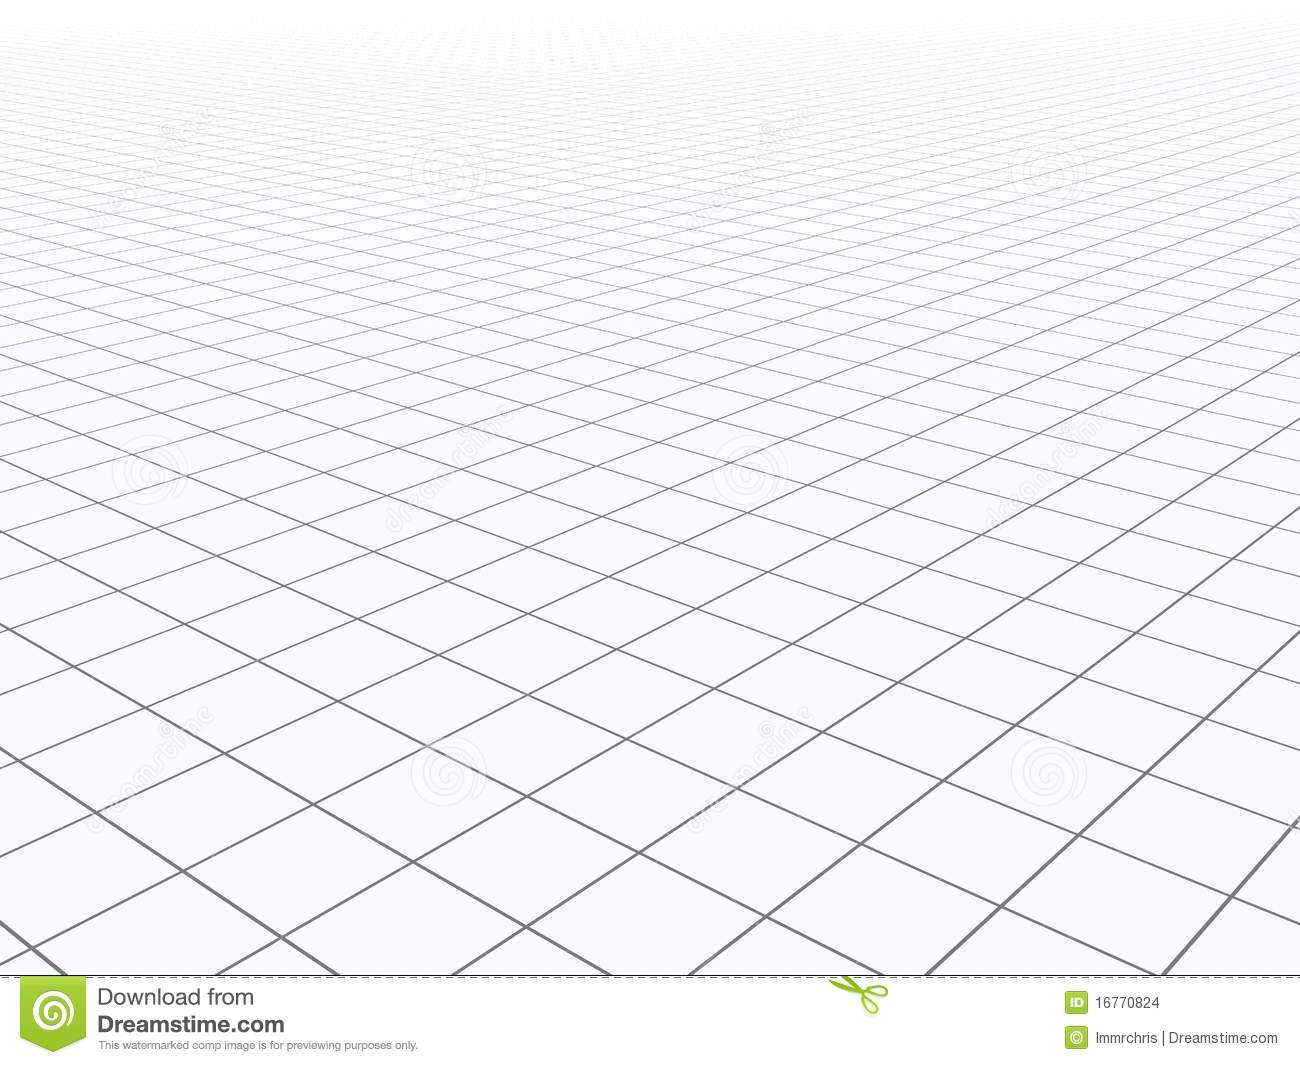 Infinite Grid Stock Images - Image: 16770824